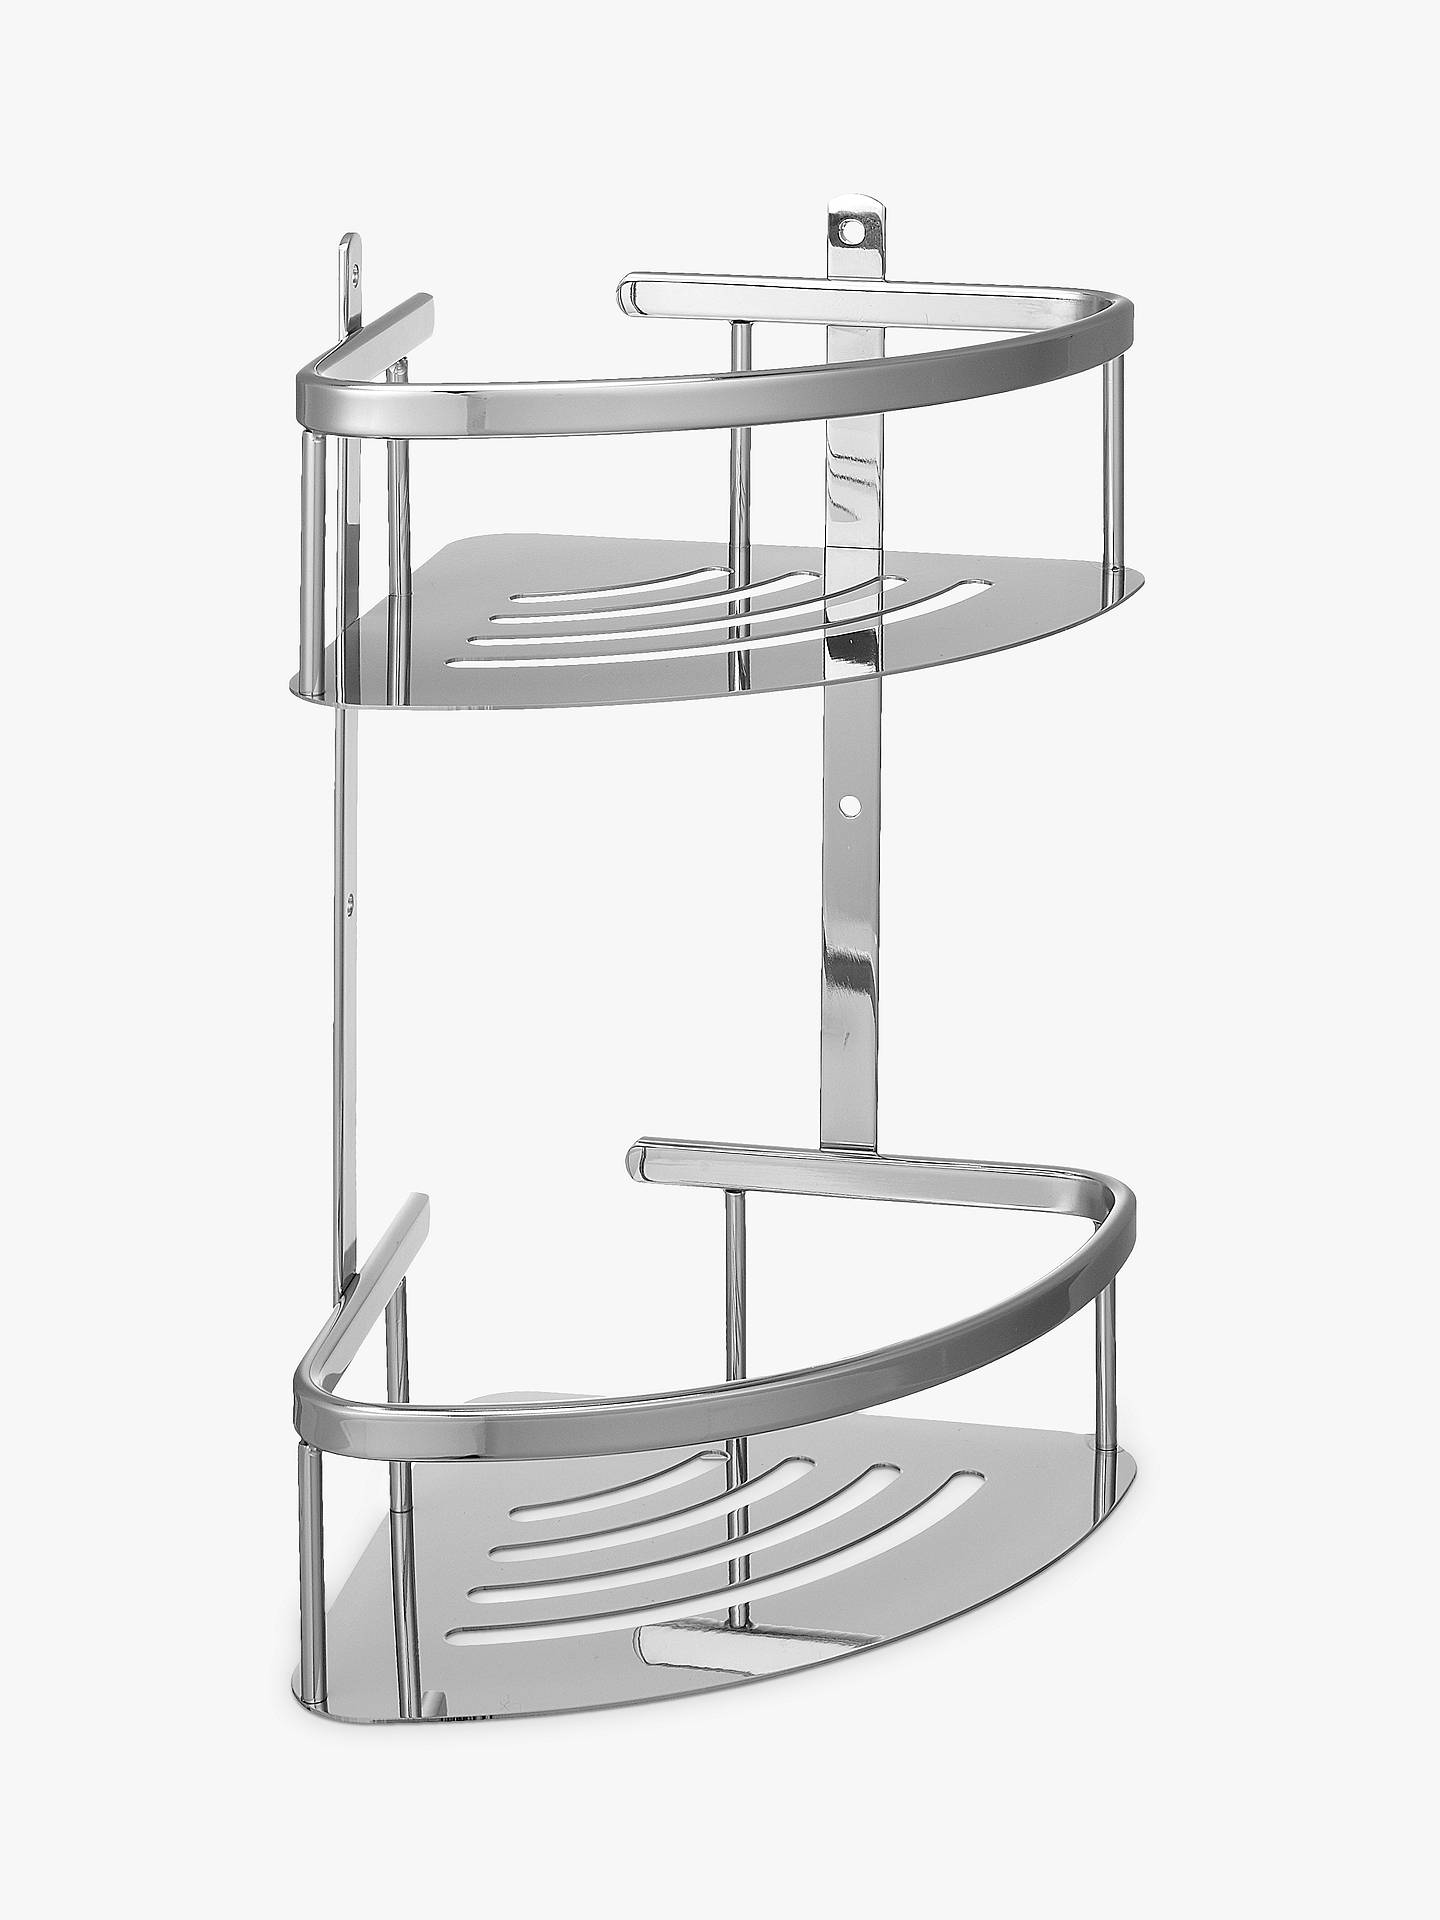 BuyJohn Lewis & Partners Contemporary Brass and Stainless Steel 2 Tier Corner Shower Basket Online at johnlewis.com